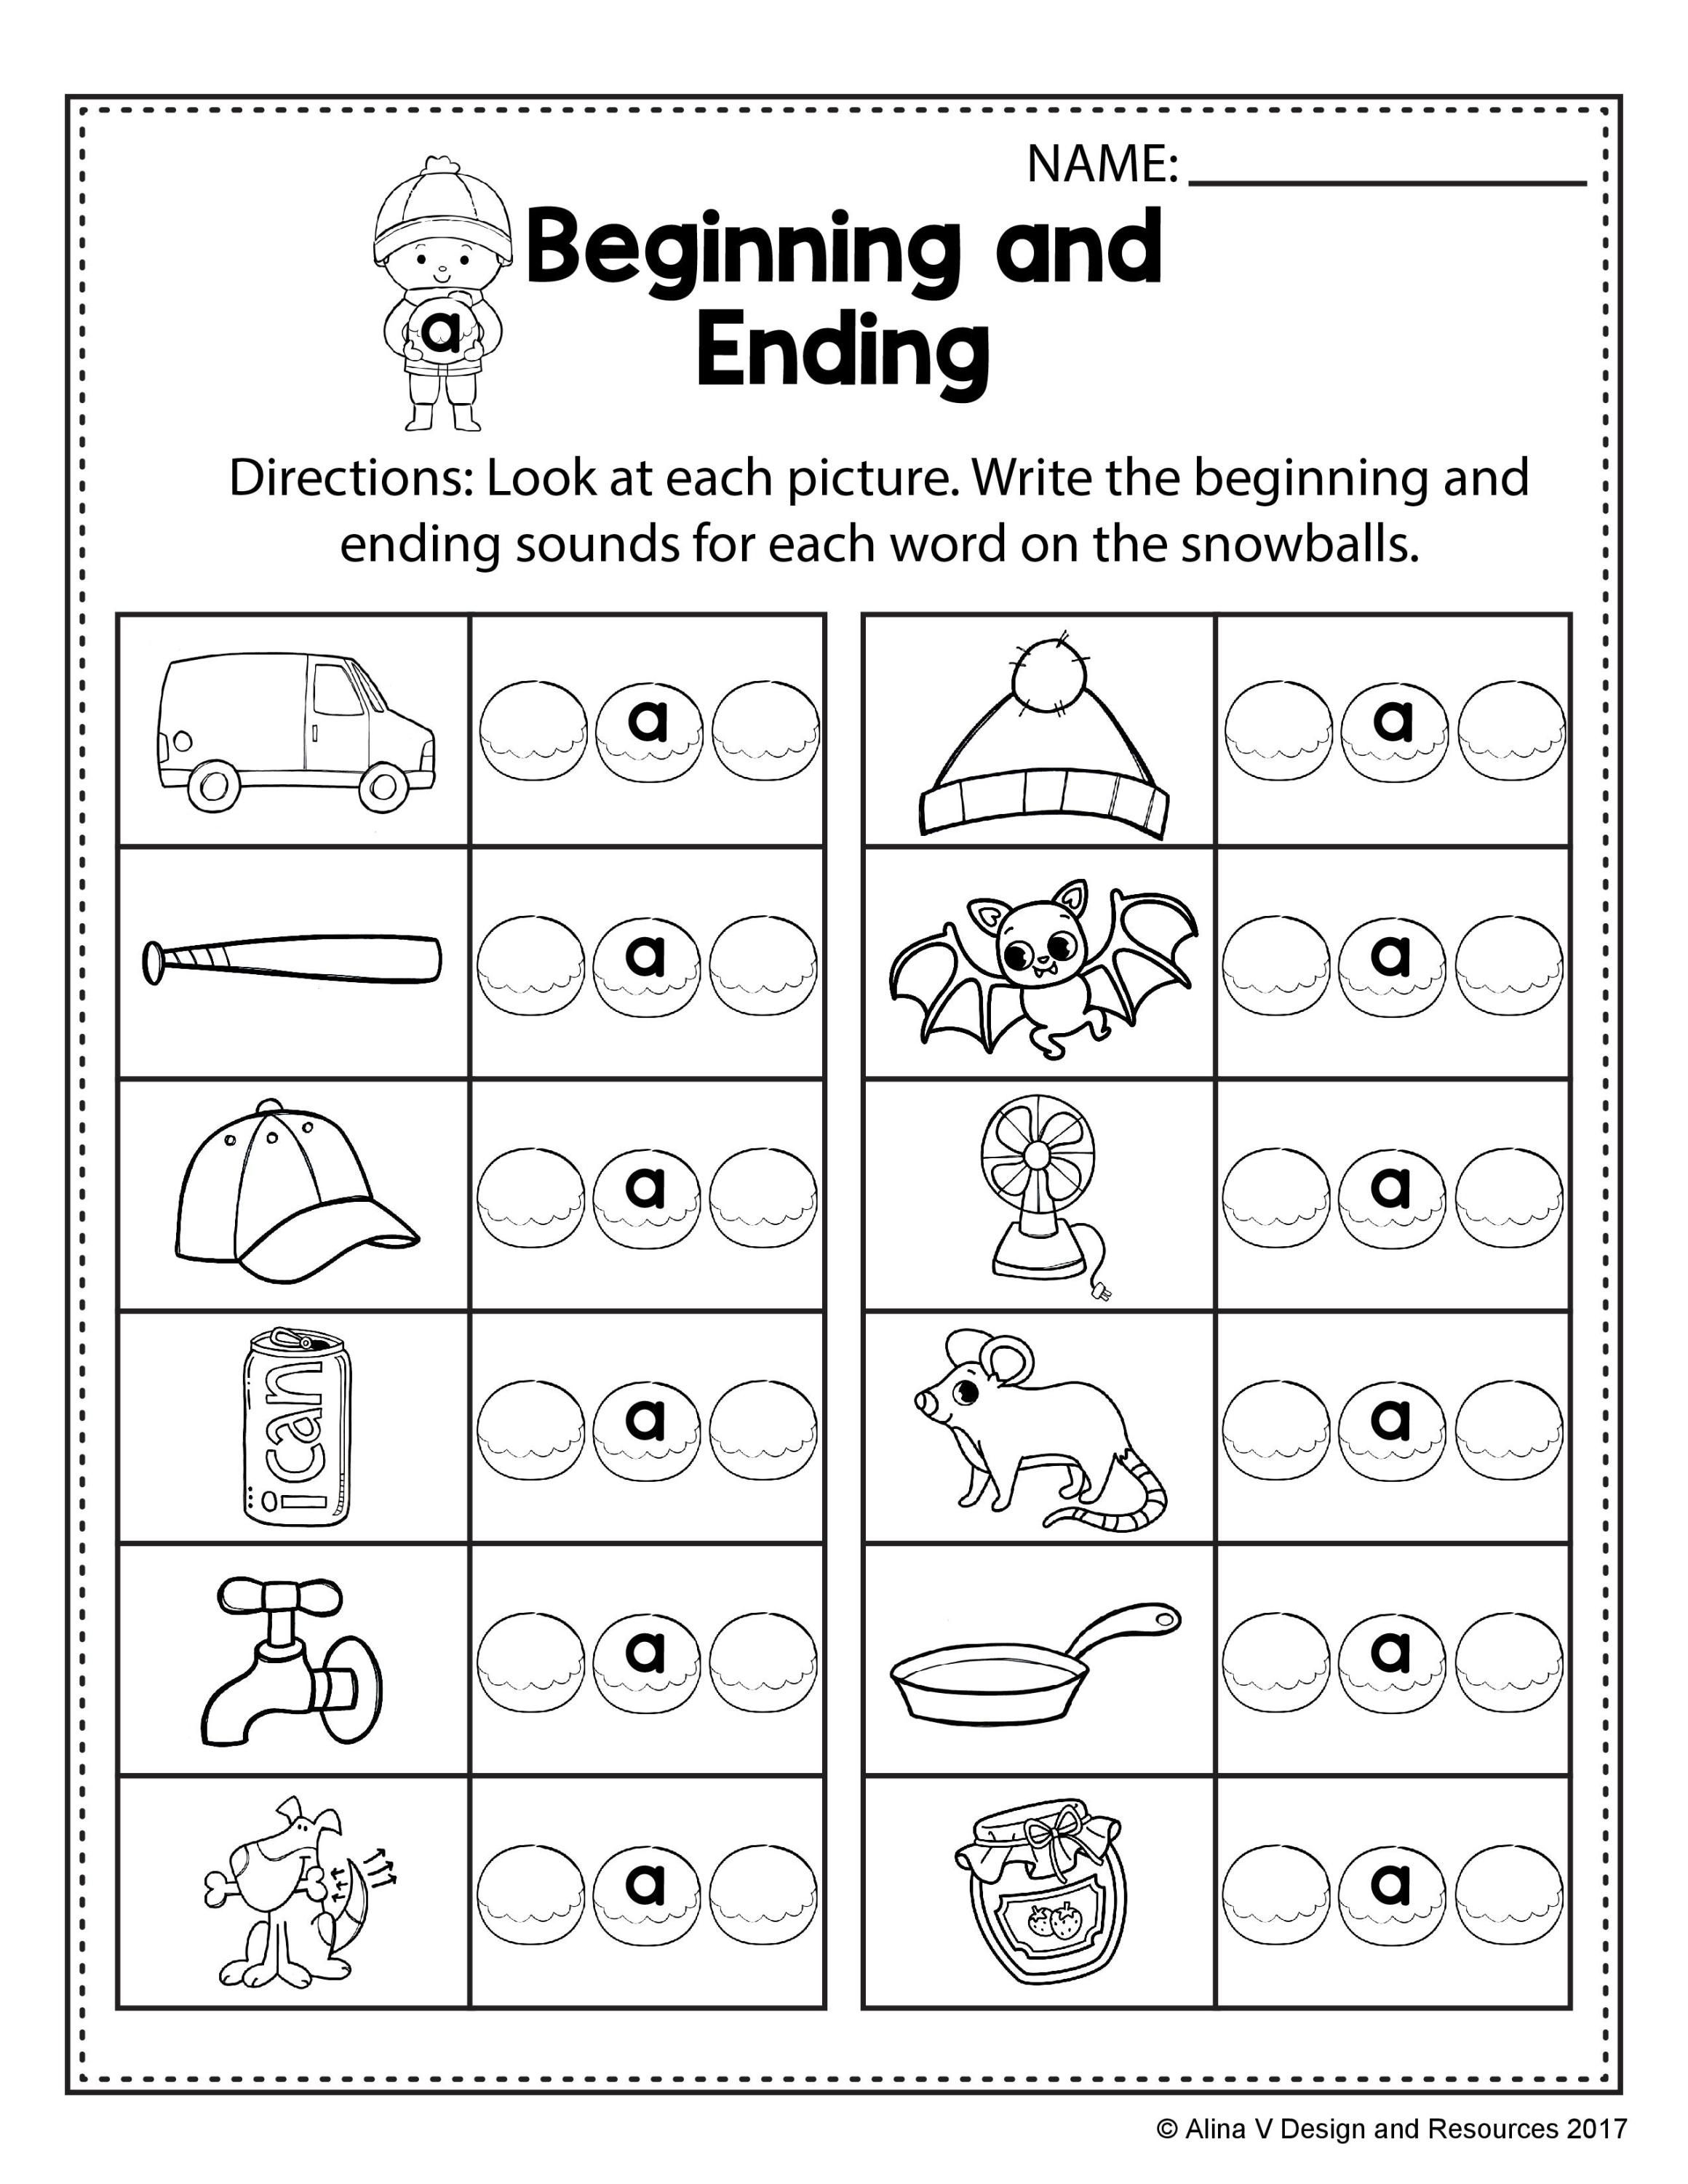 Make New Words By Changing The Beginning Sound